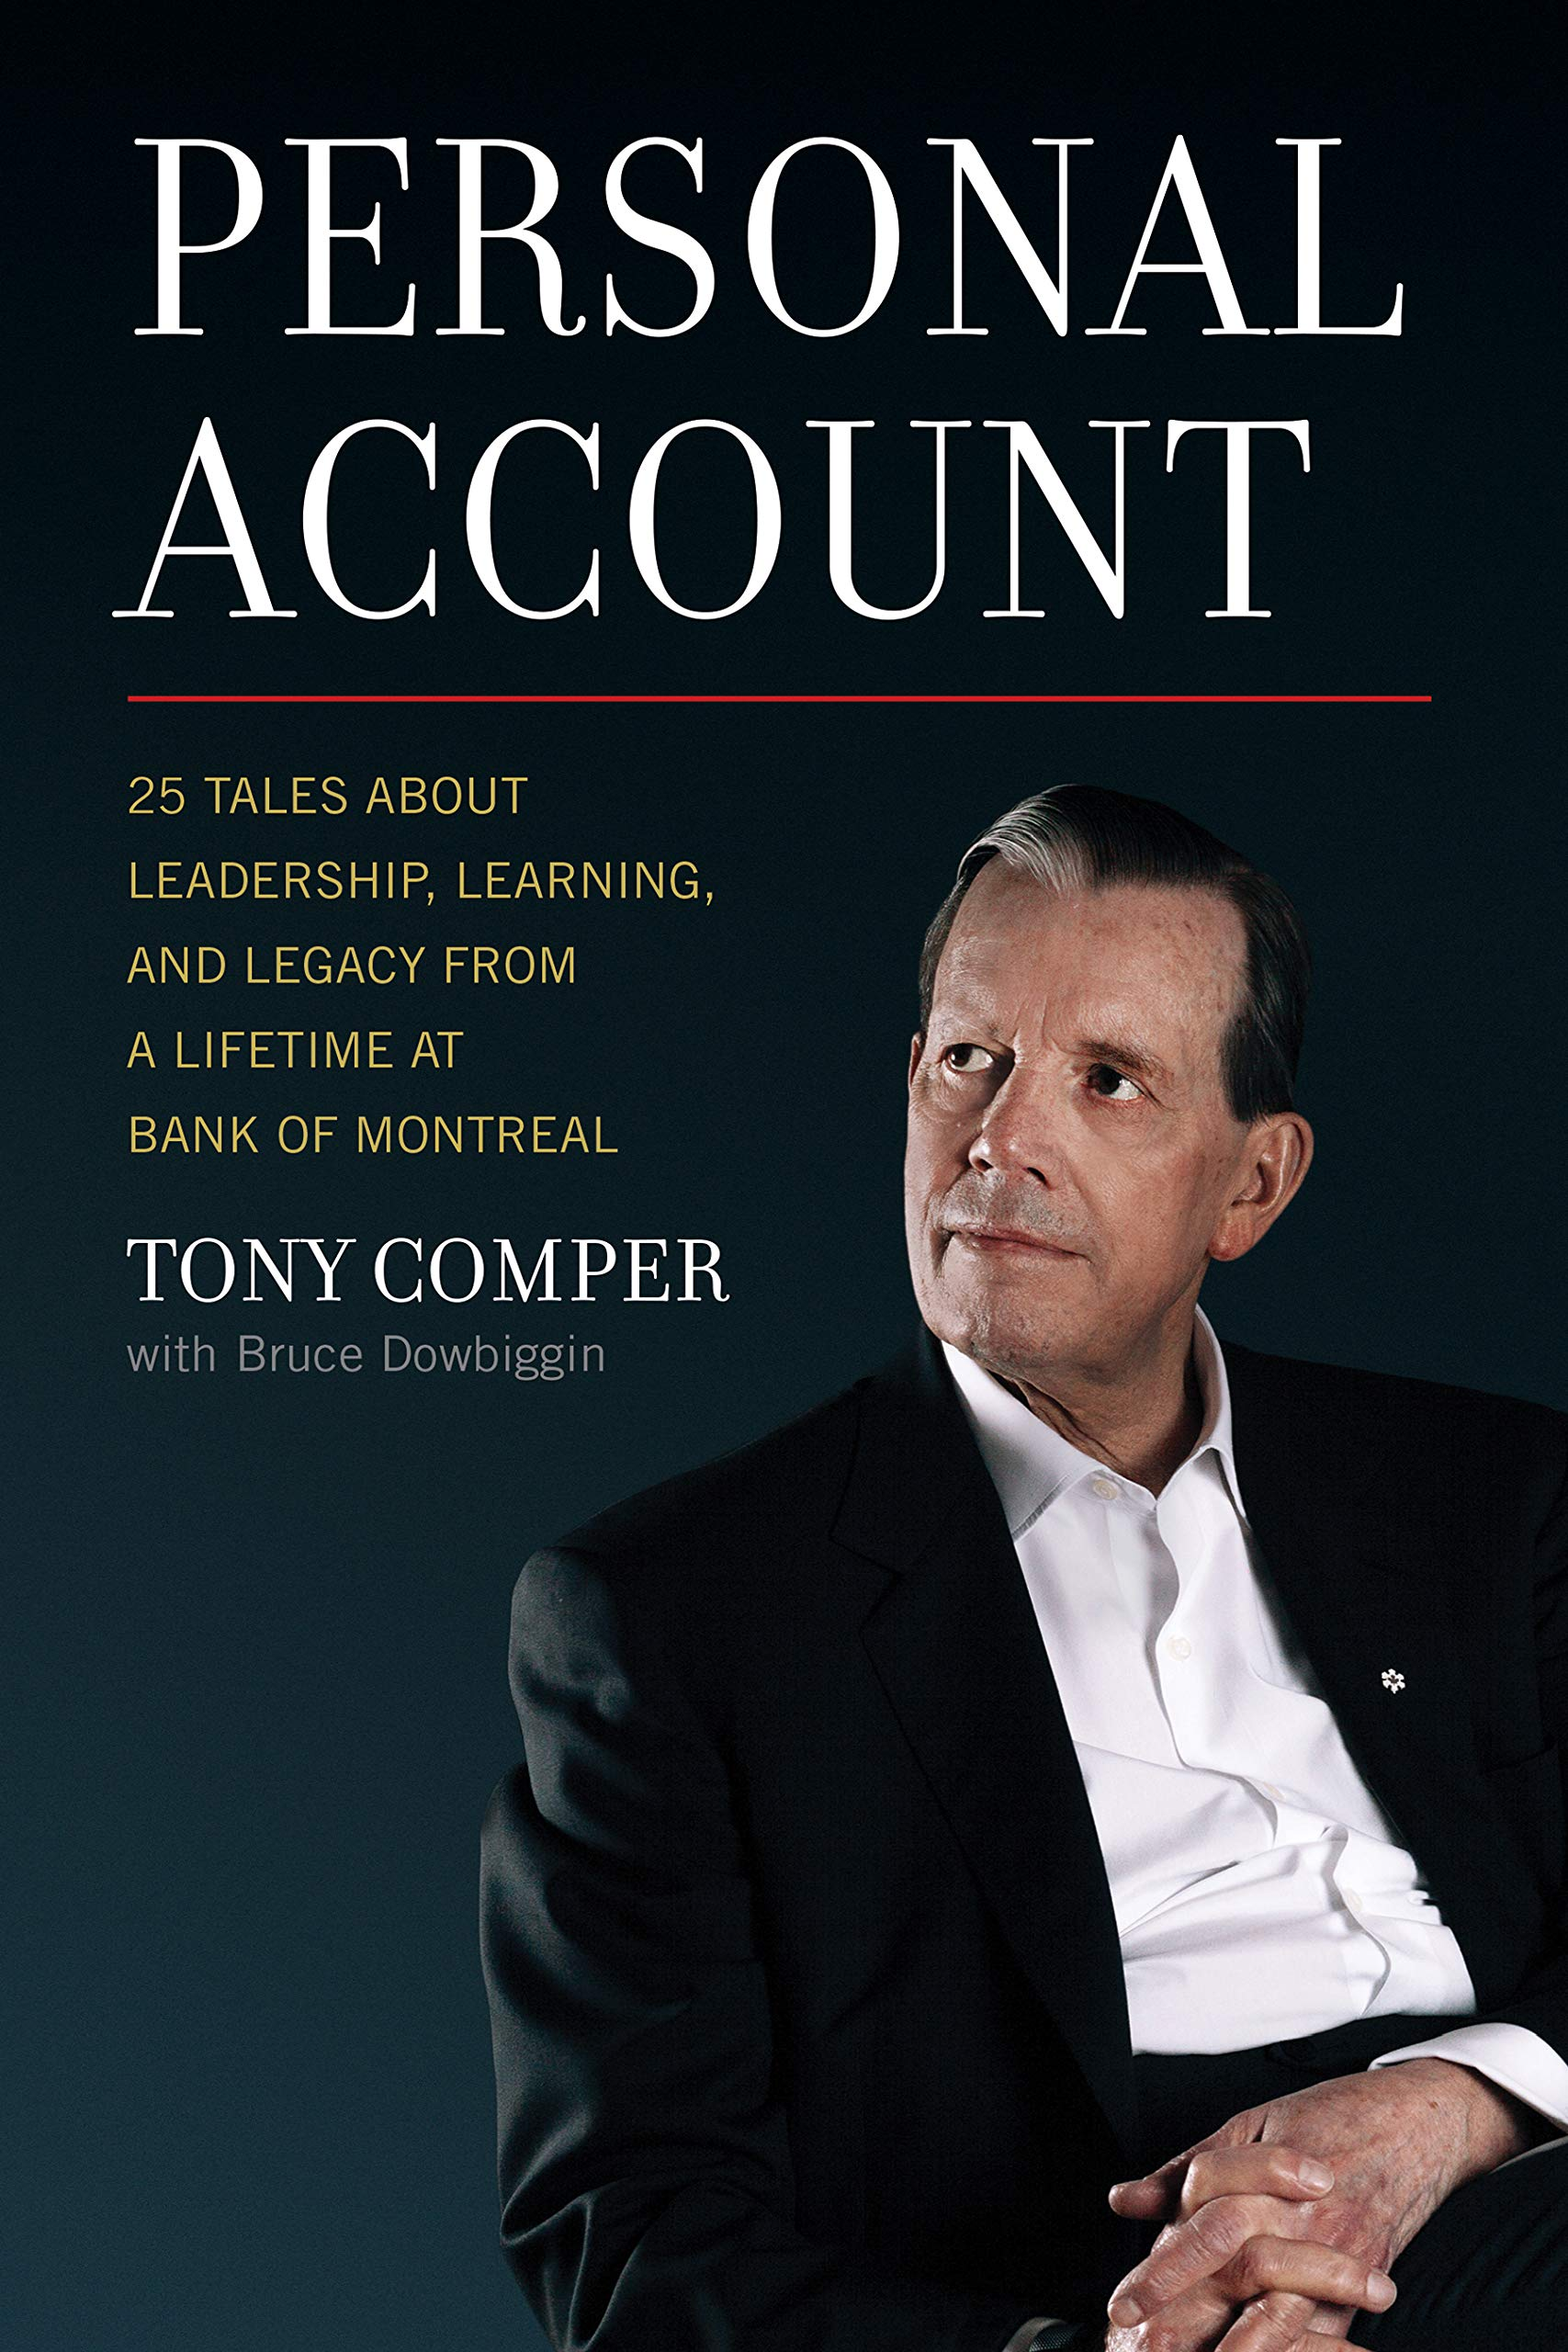 Personal Account: 25 Tales About Leadership, Learning, and Legacy from a Lifetime at Bank of Montreal